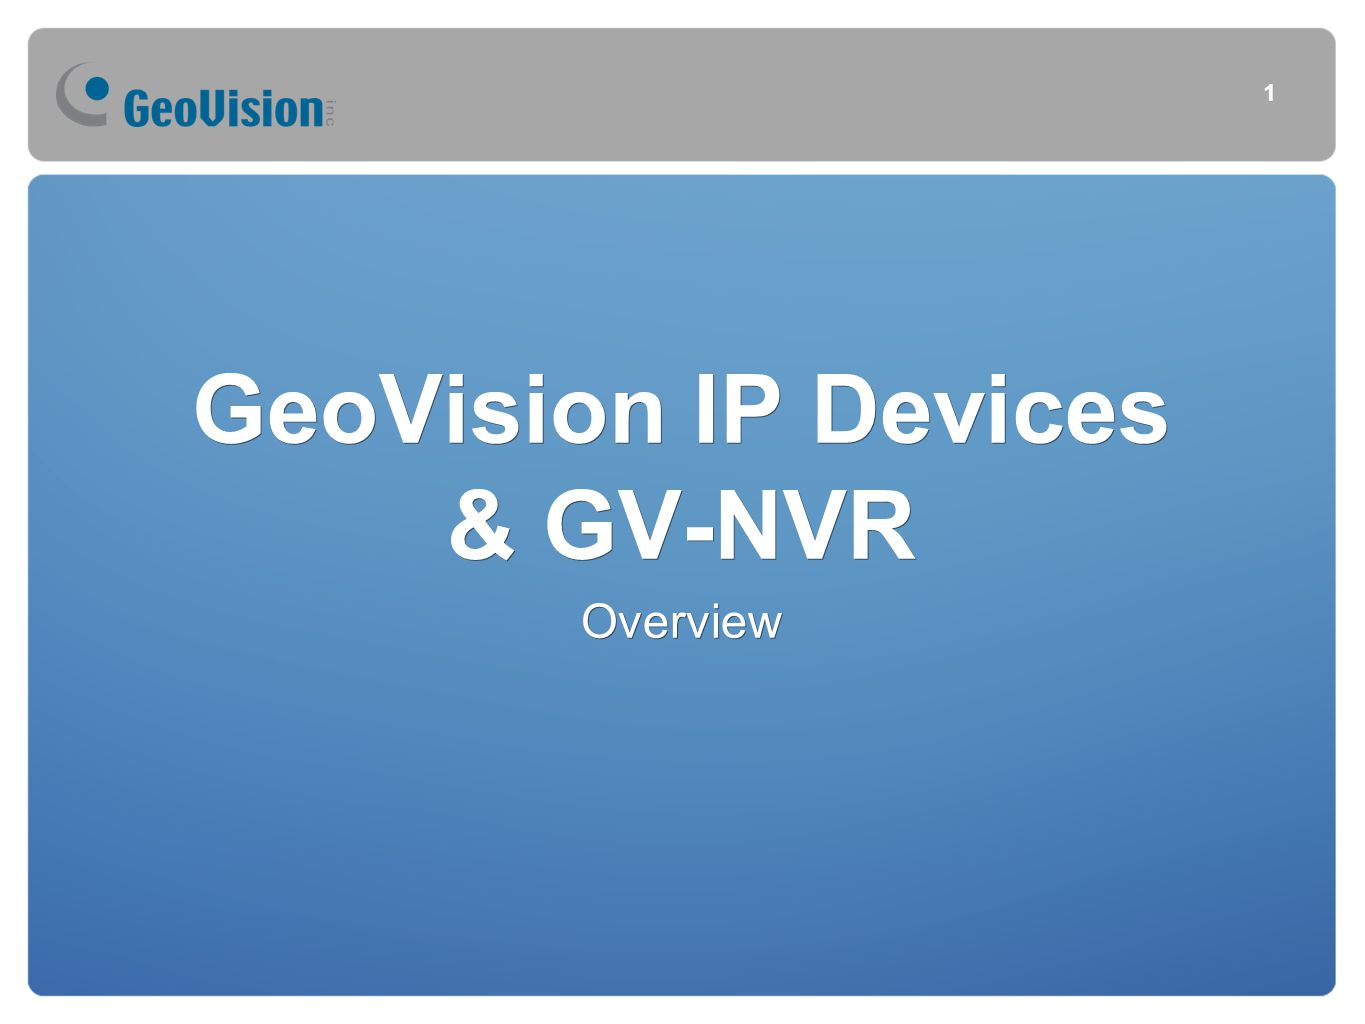 GeoVision IP Devices & GV-NVR